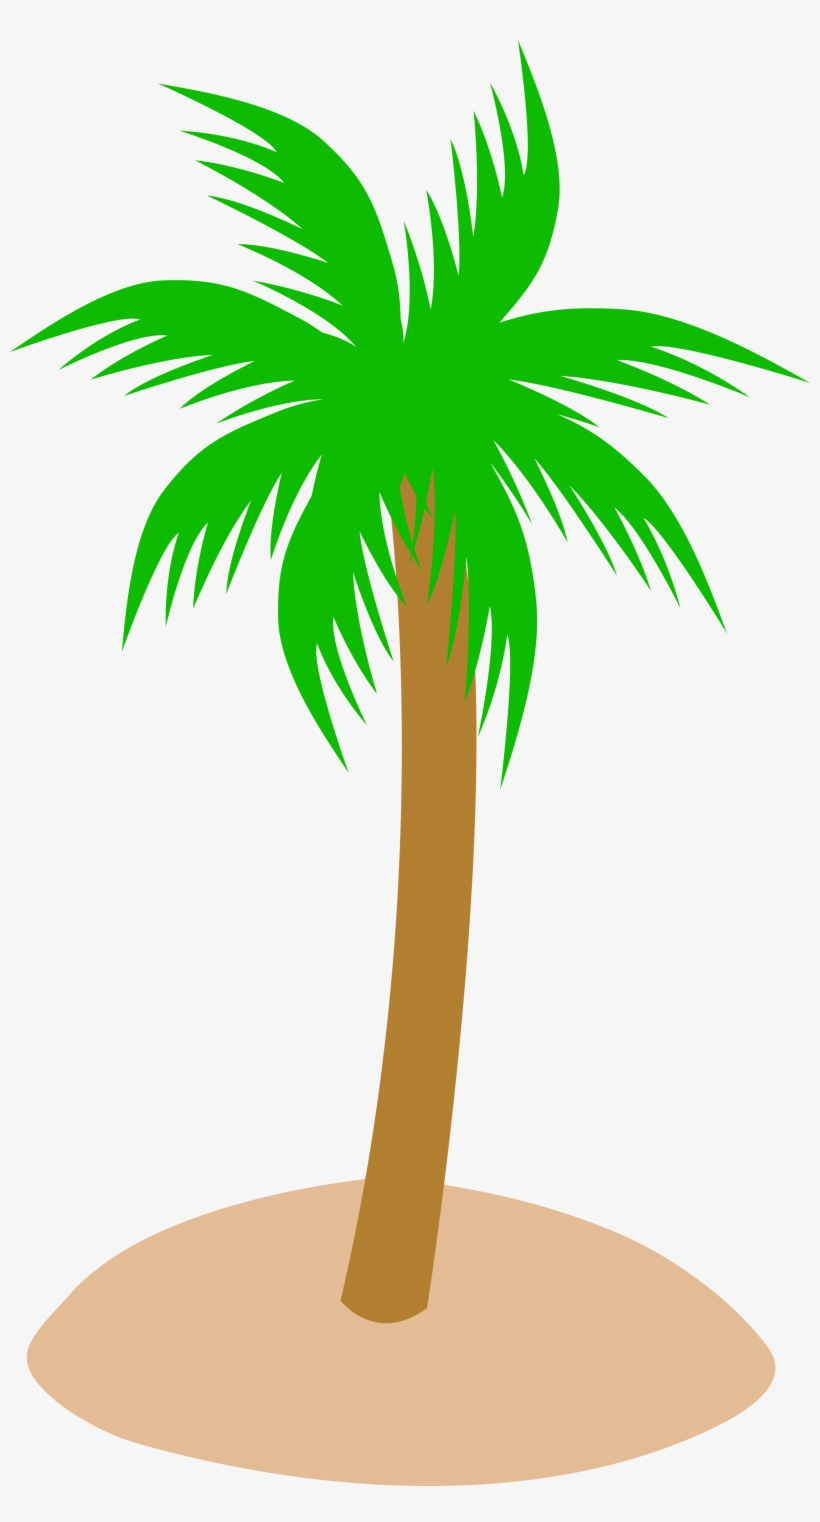 Single Clipart Coconut Tree - Palm Tree No Background, transparent png #35217